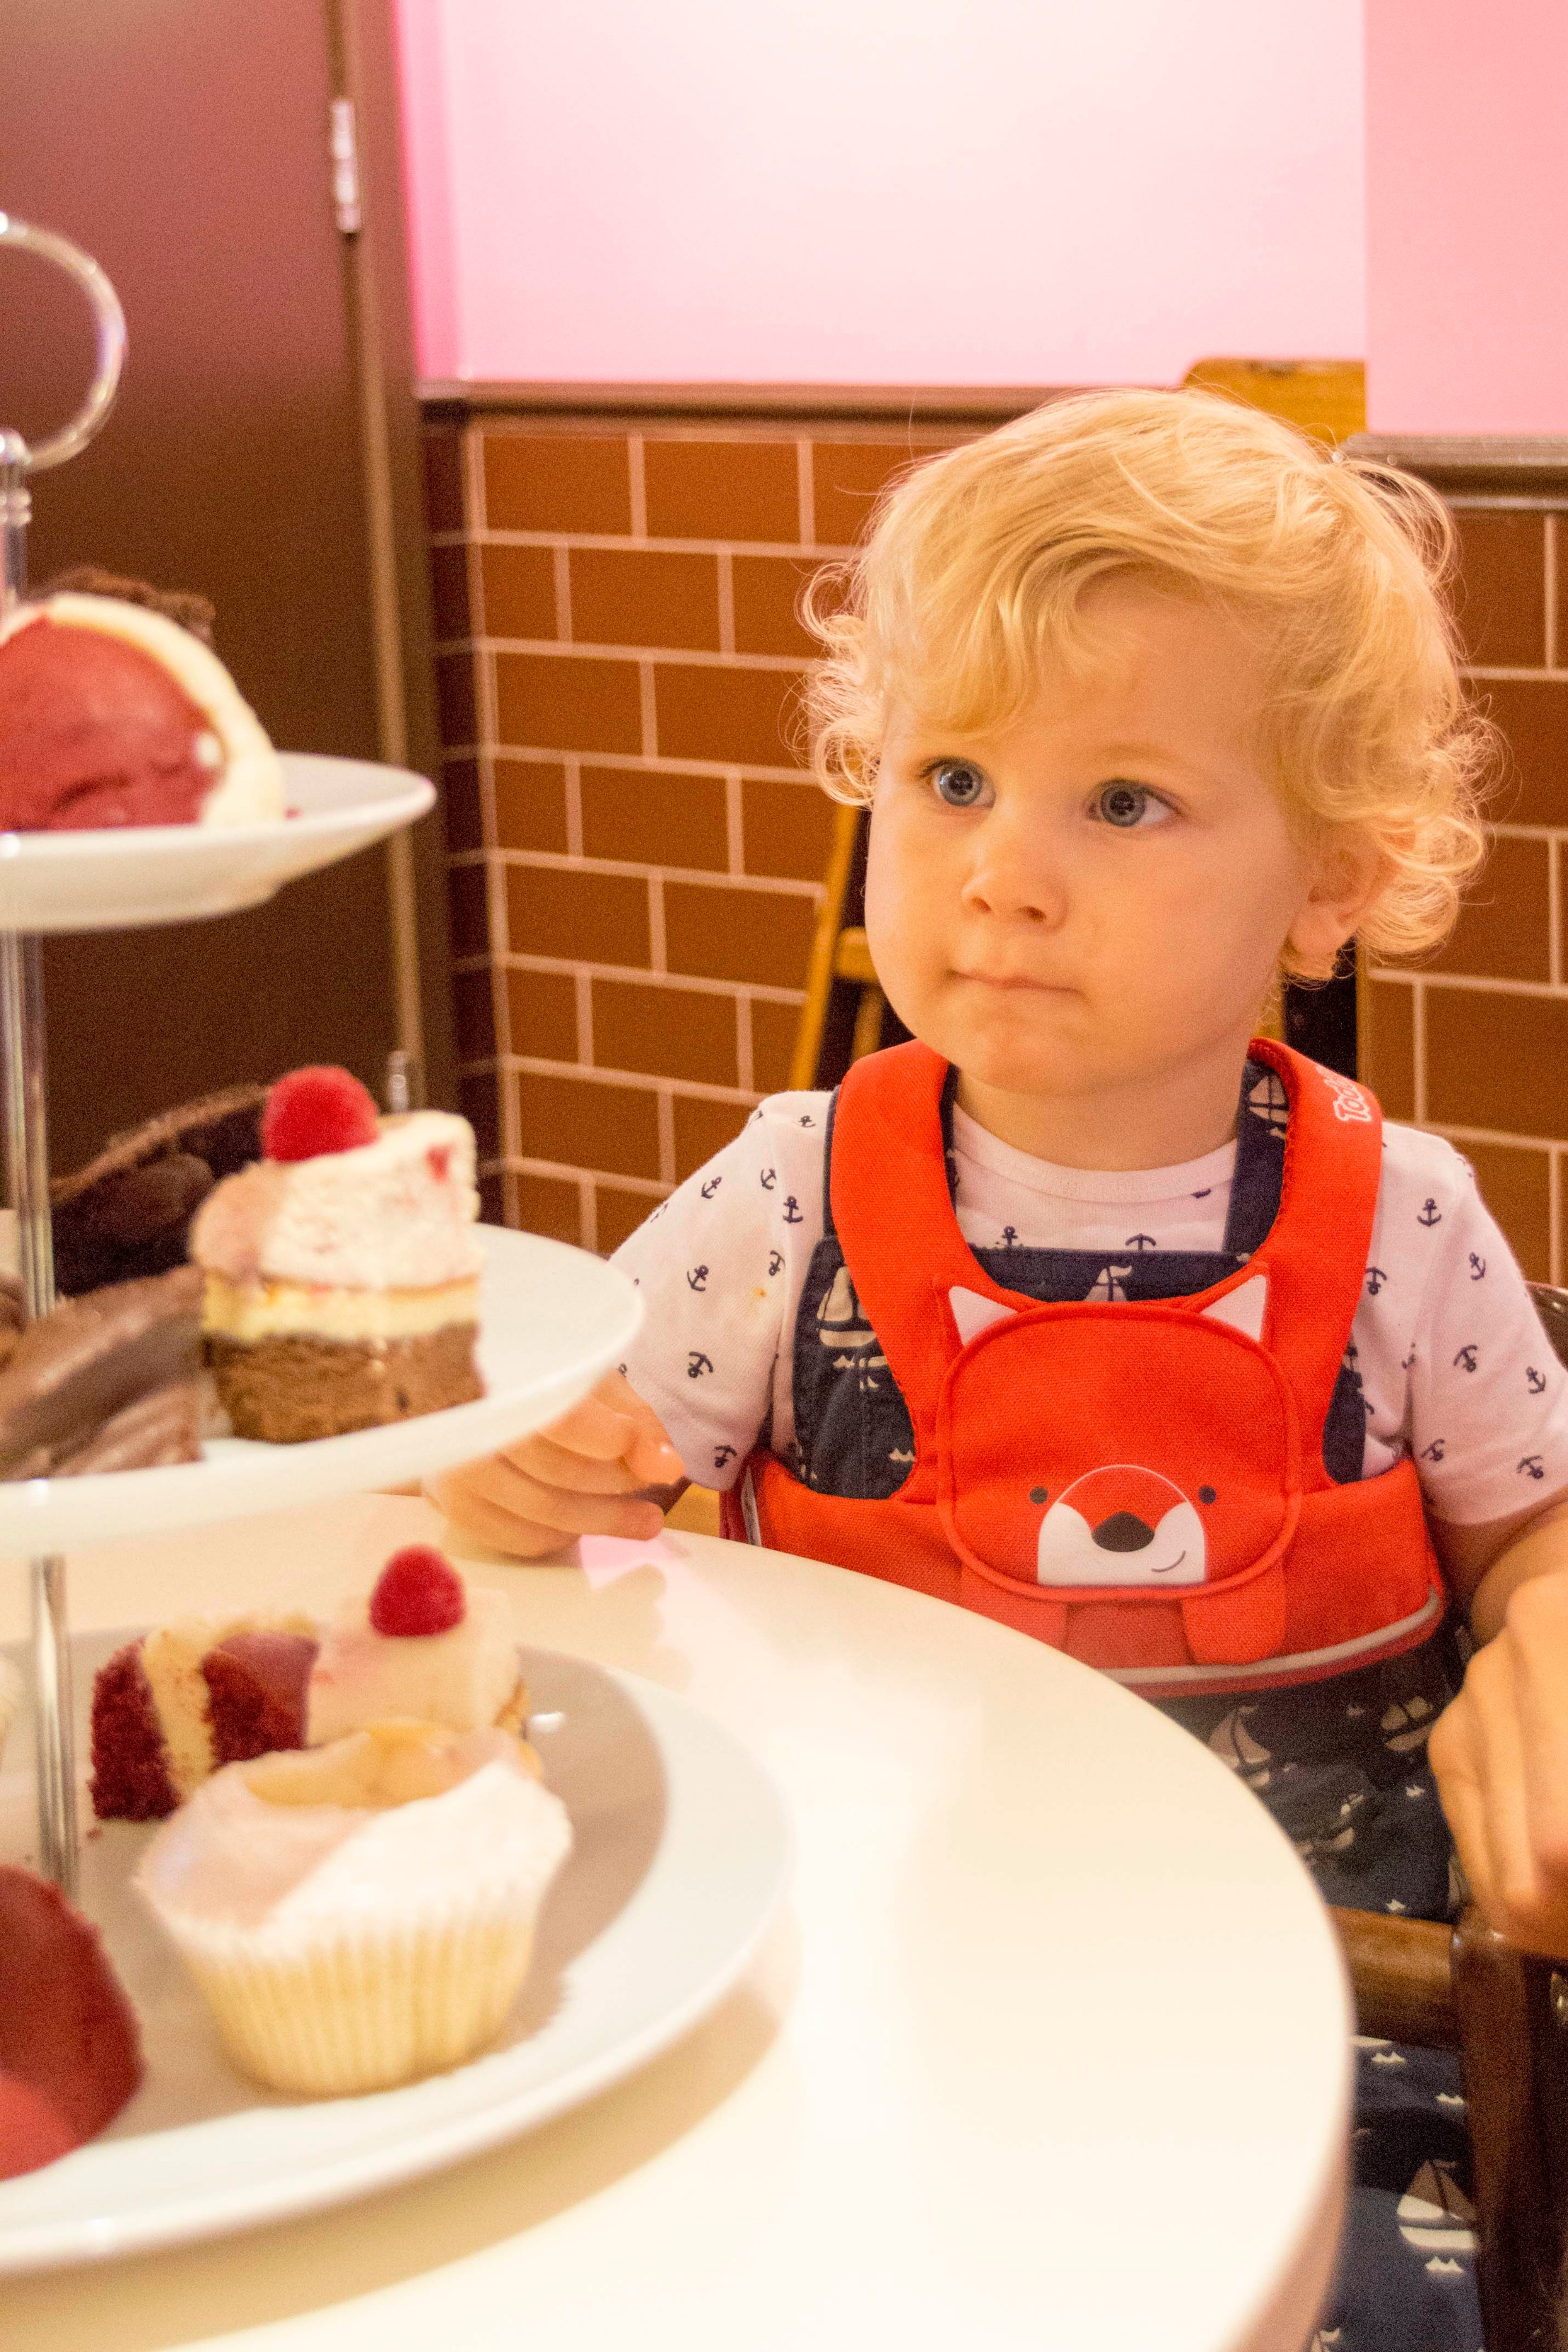 Boy starring at cakes